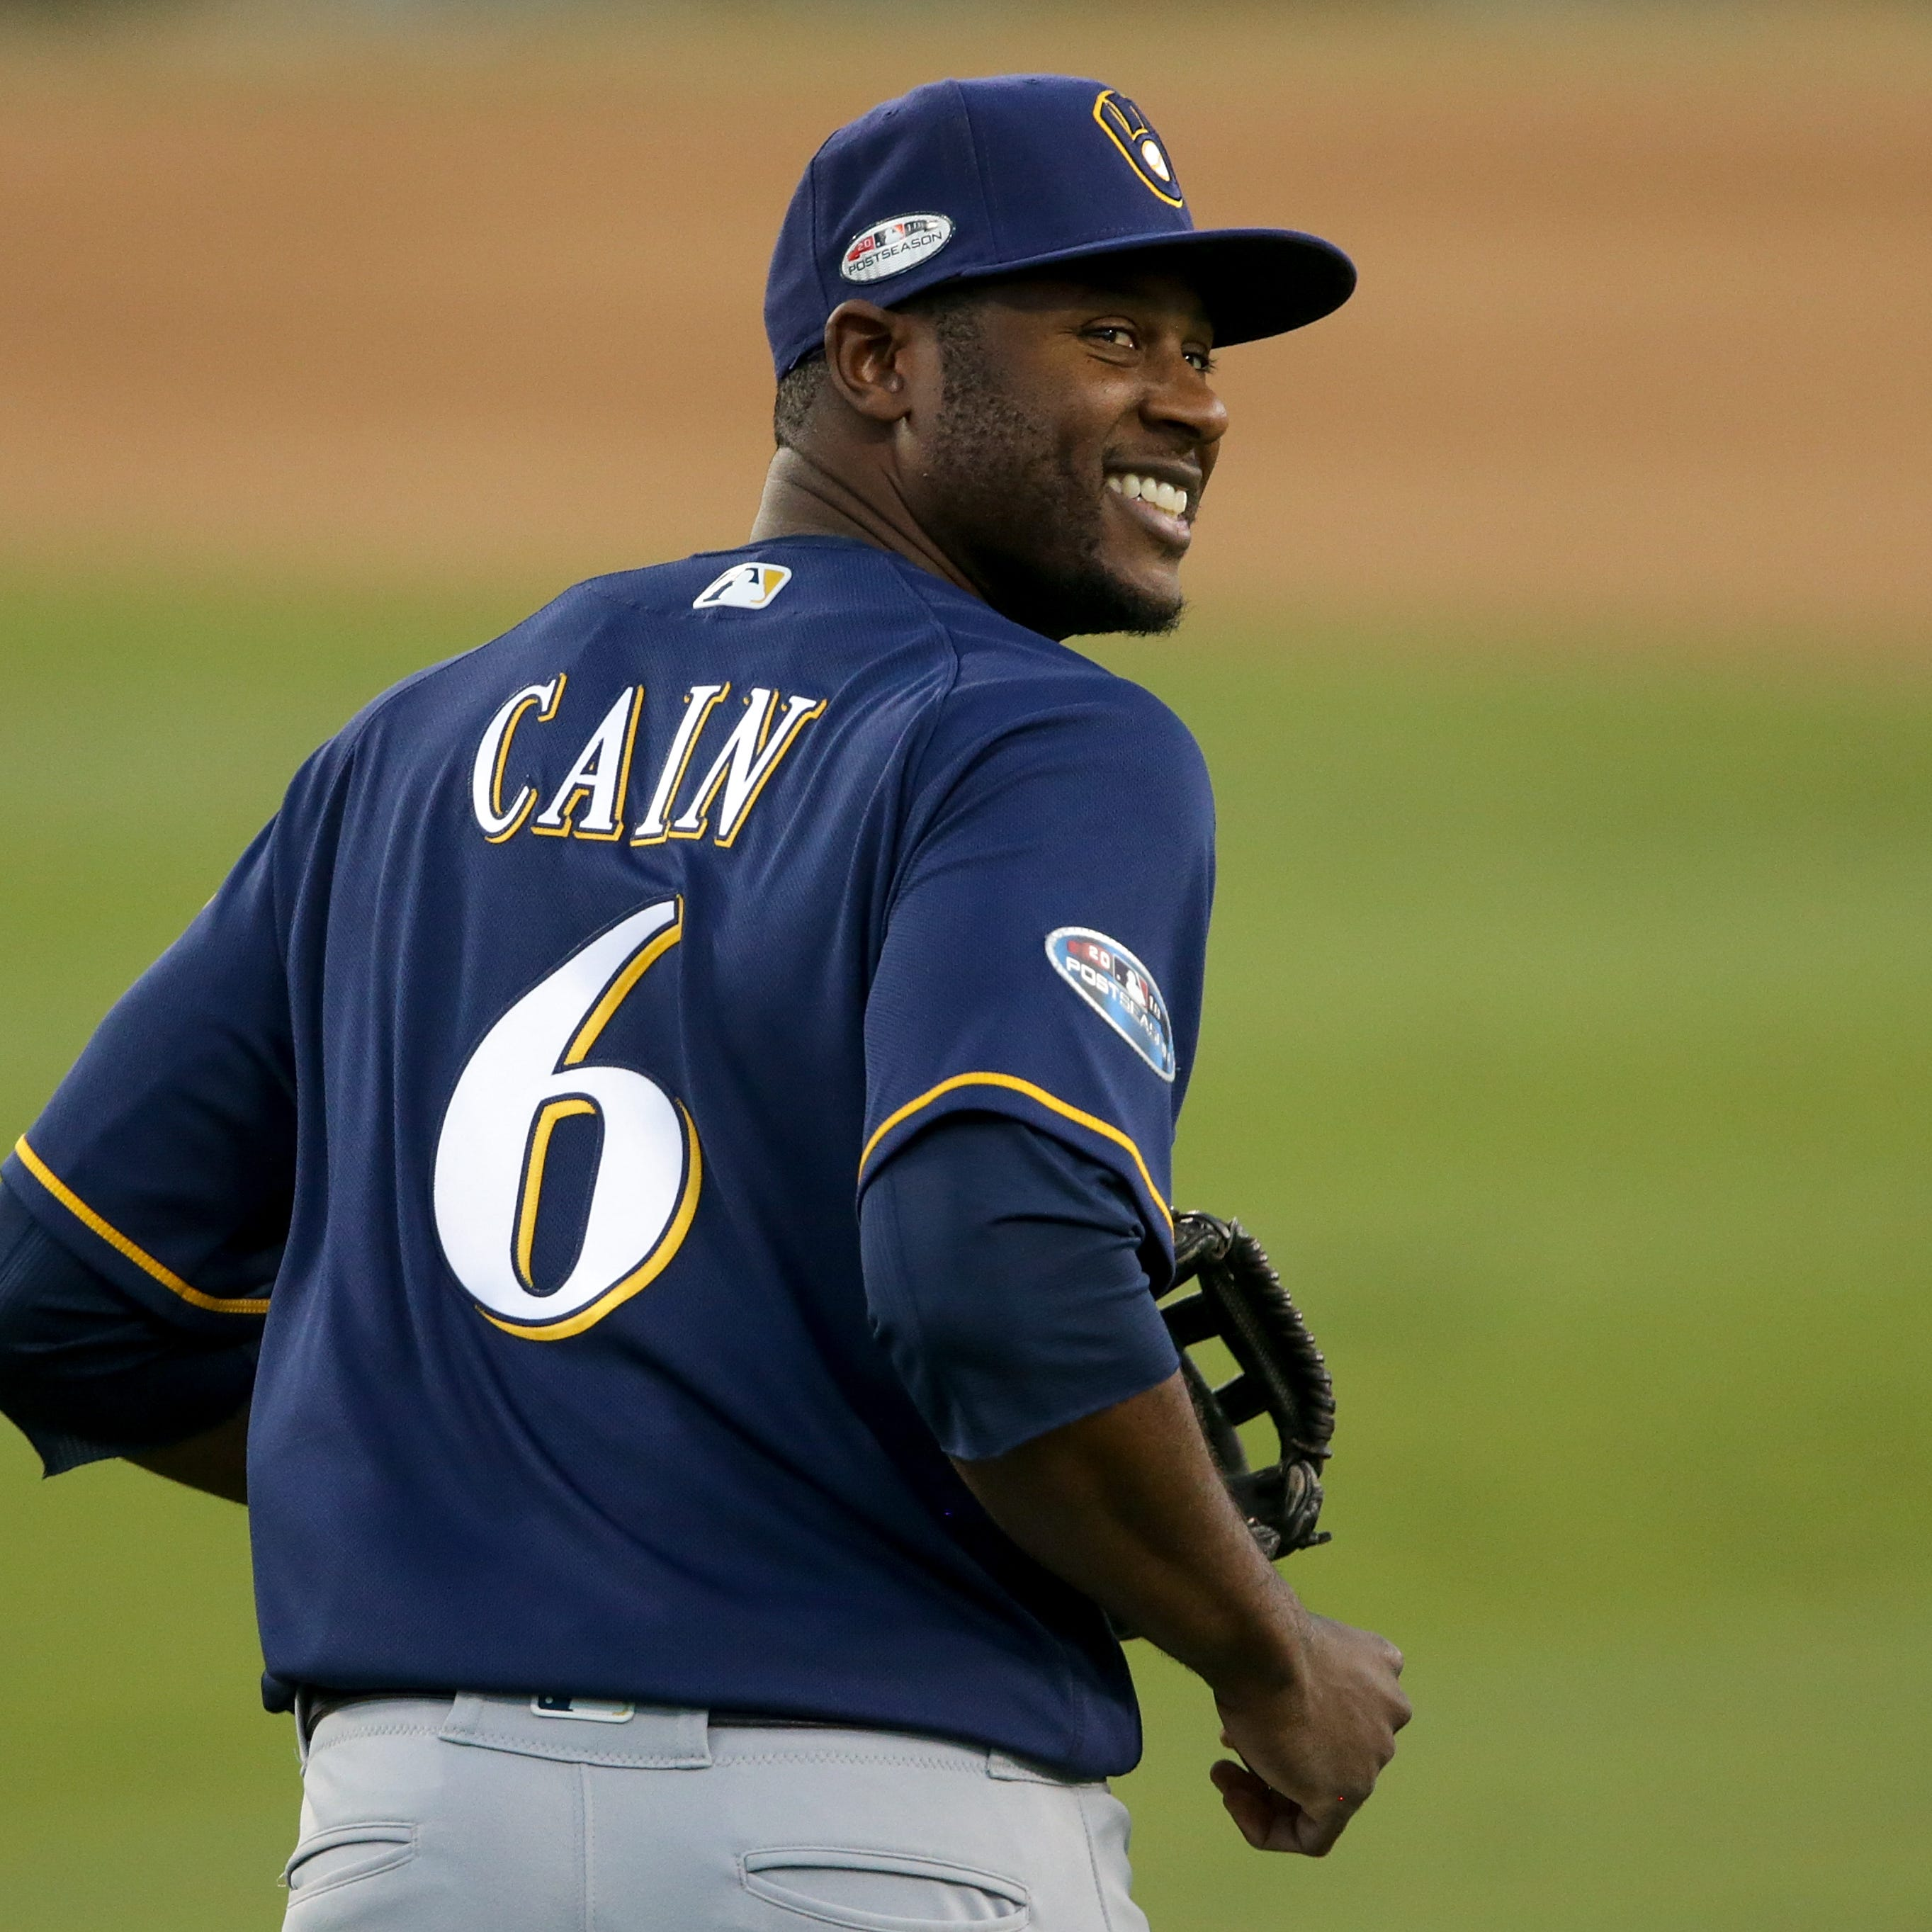 Lorenzo Cain has plenty to take in as he reports to Brewers camp on Monday